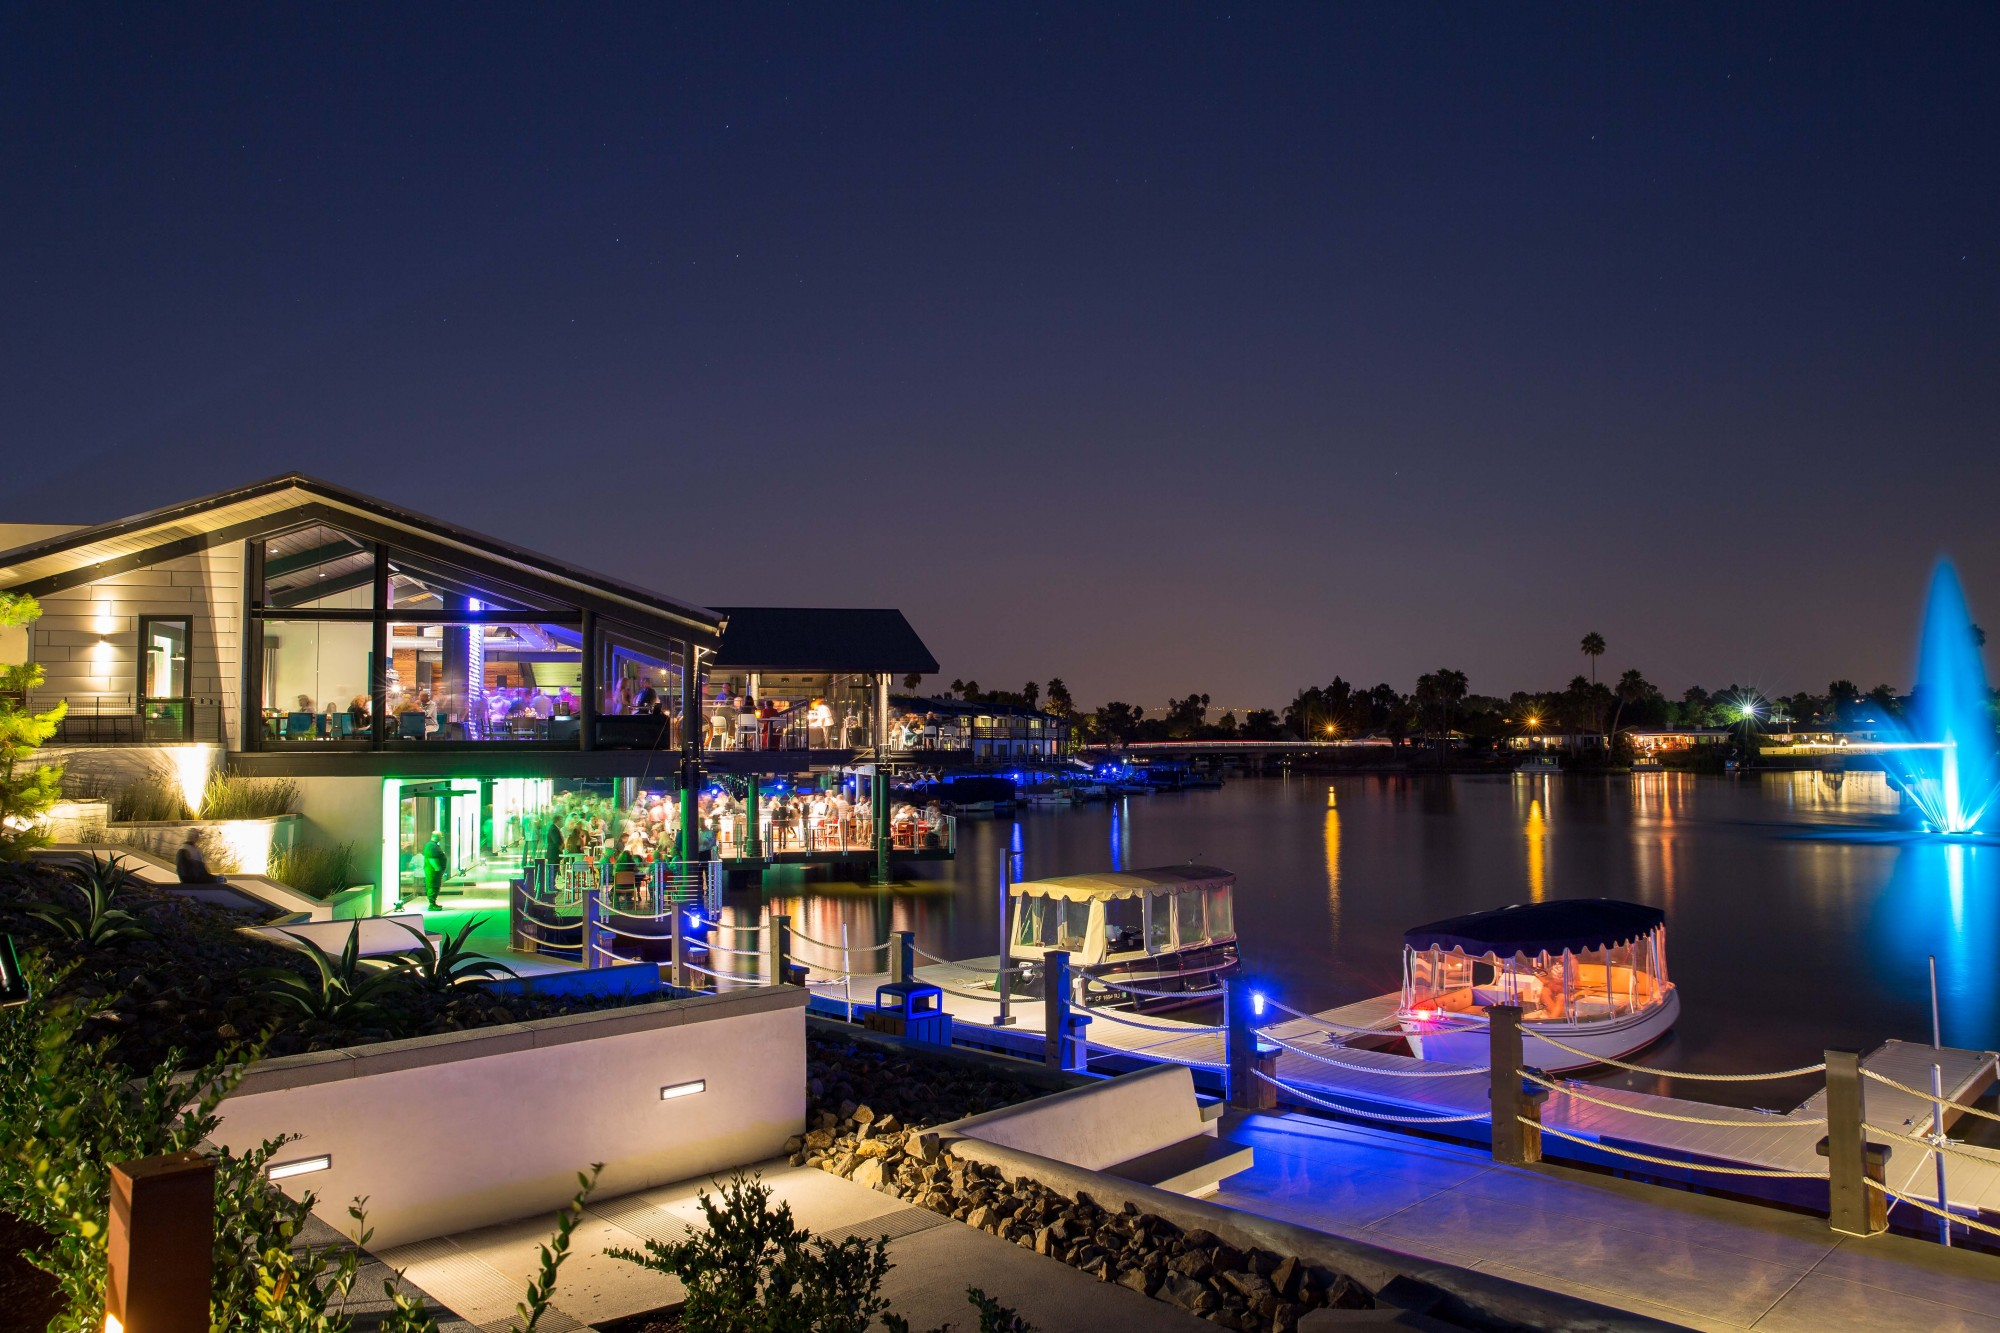 Lakeside view at Decoy Dockside Dining